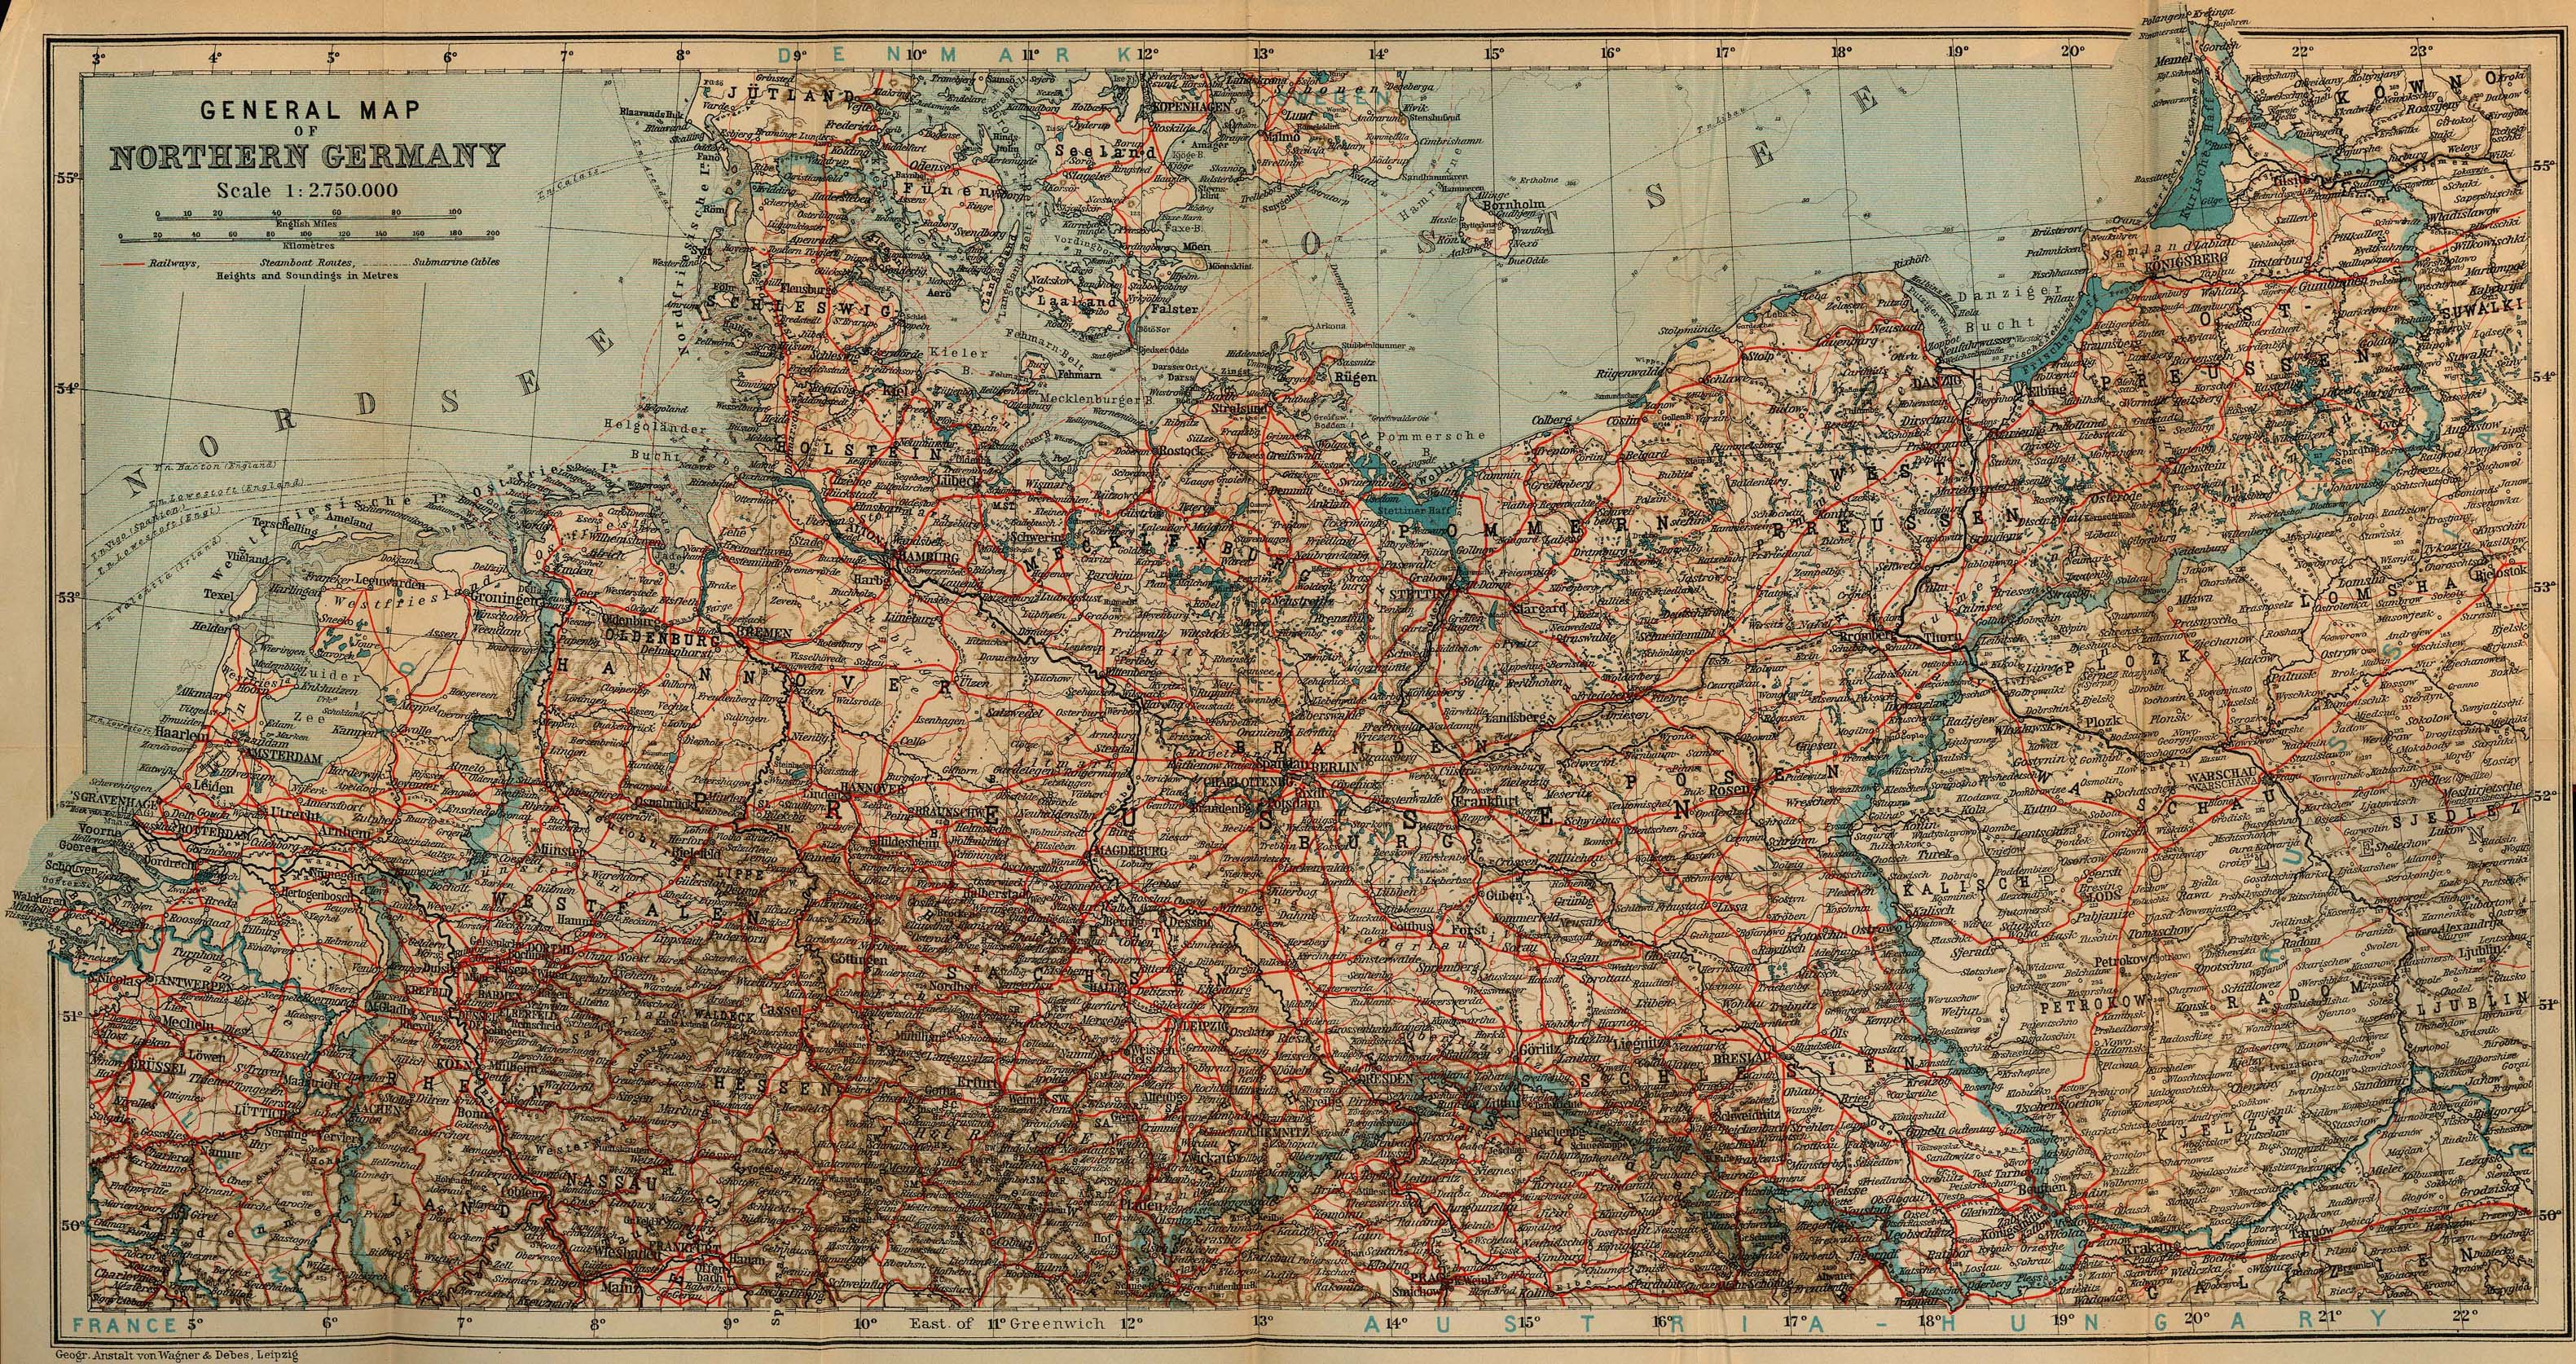 Northern Germany Map 1910